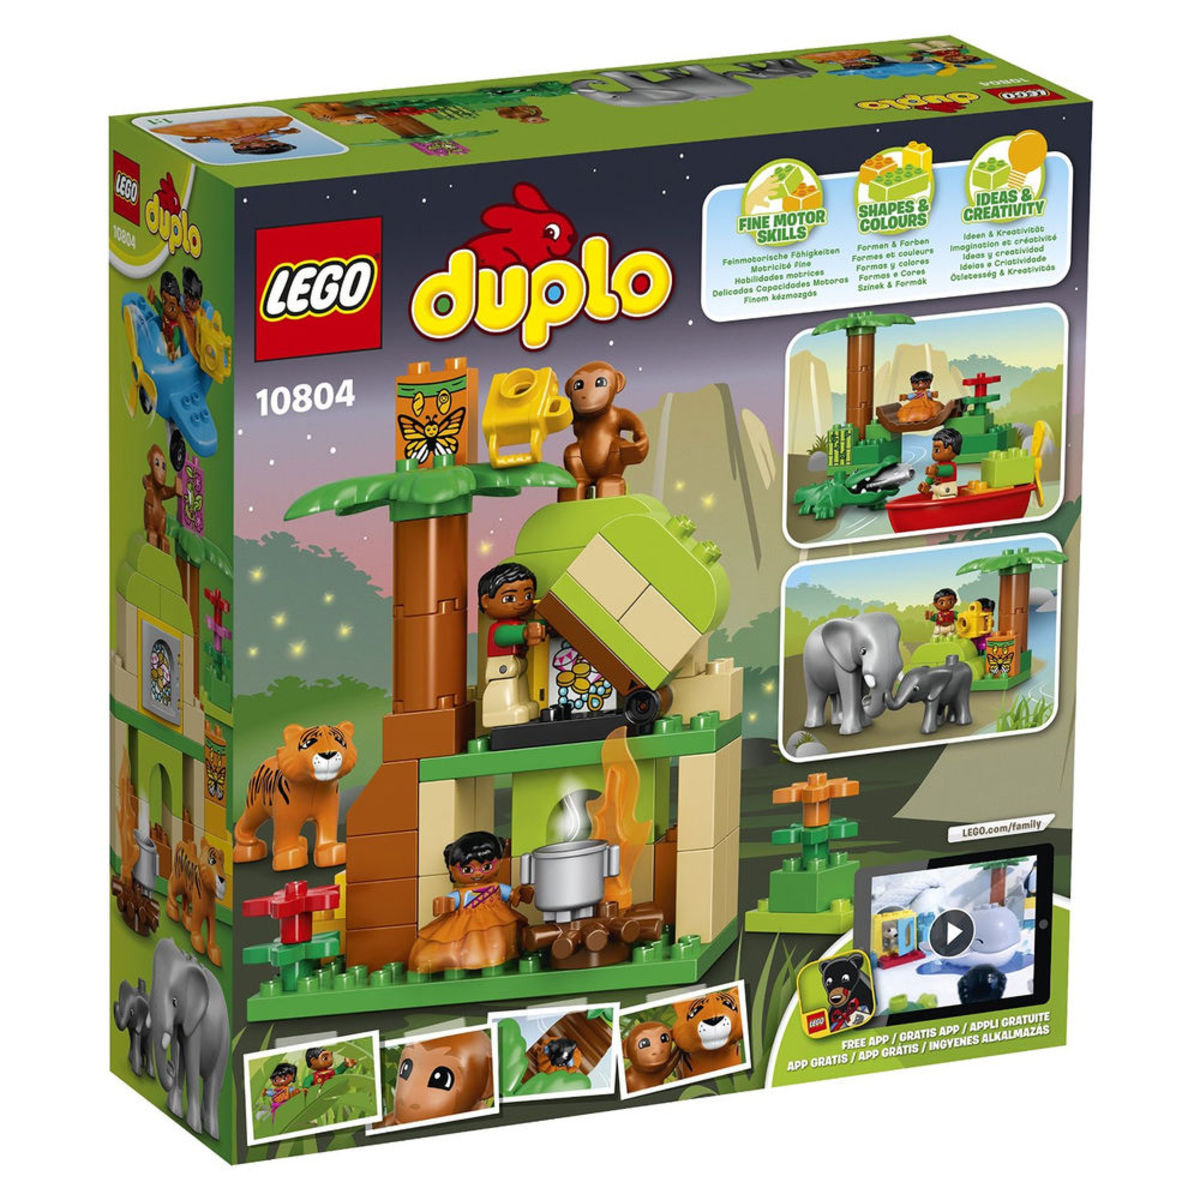 10804 DUPLO Town 叢林